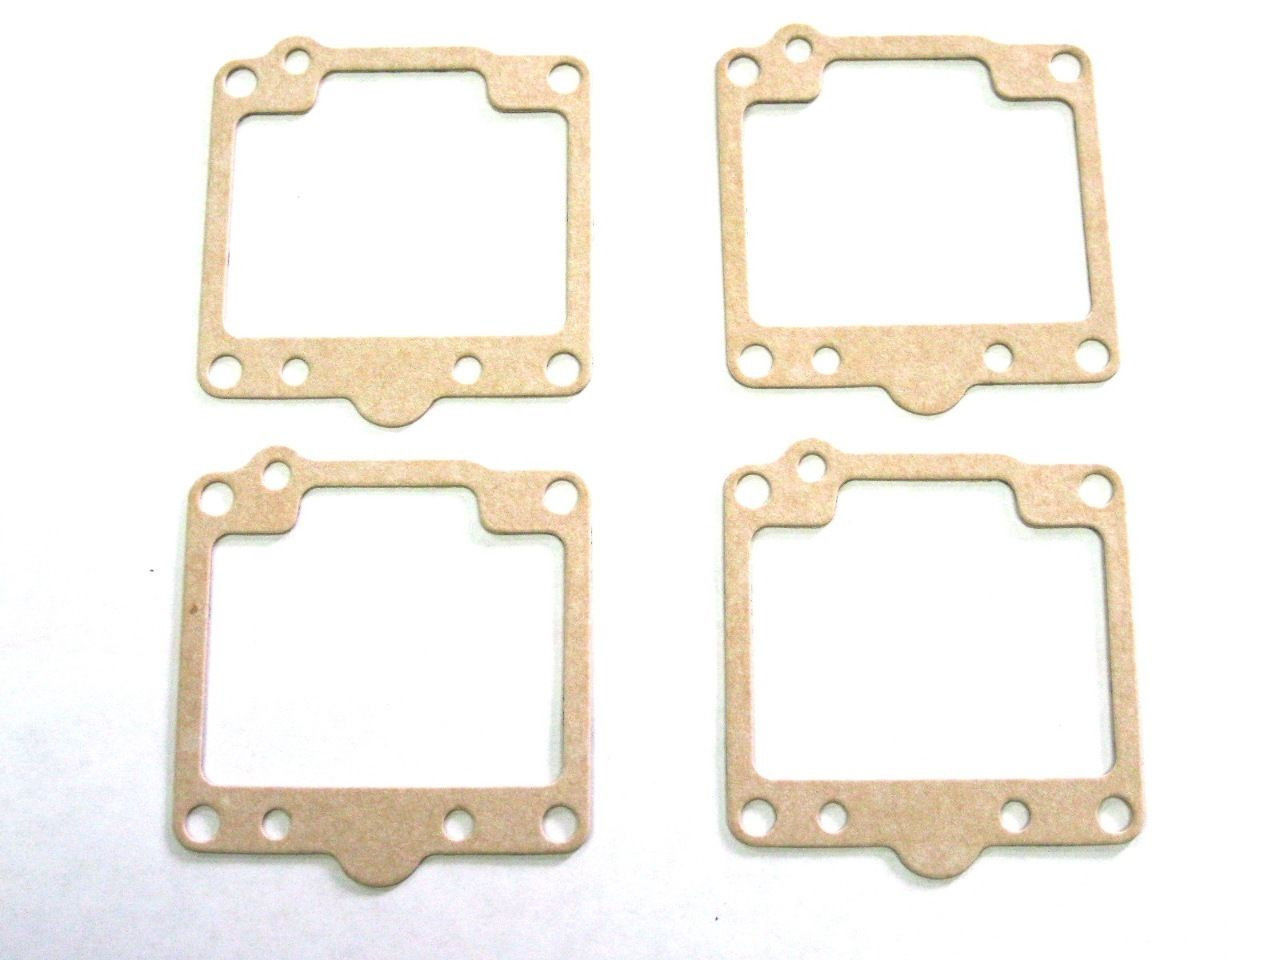 KAWASAKI ZX750 CARBURETOR BOWL GASKETS (20) ( $19.99 SALE)18-2614 KZ1100 KZ1000